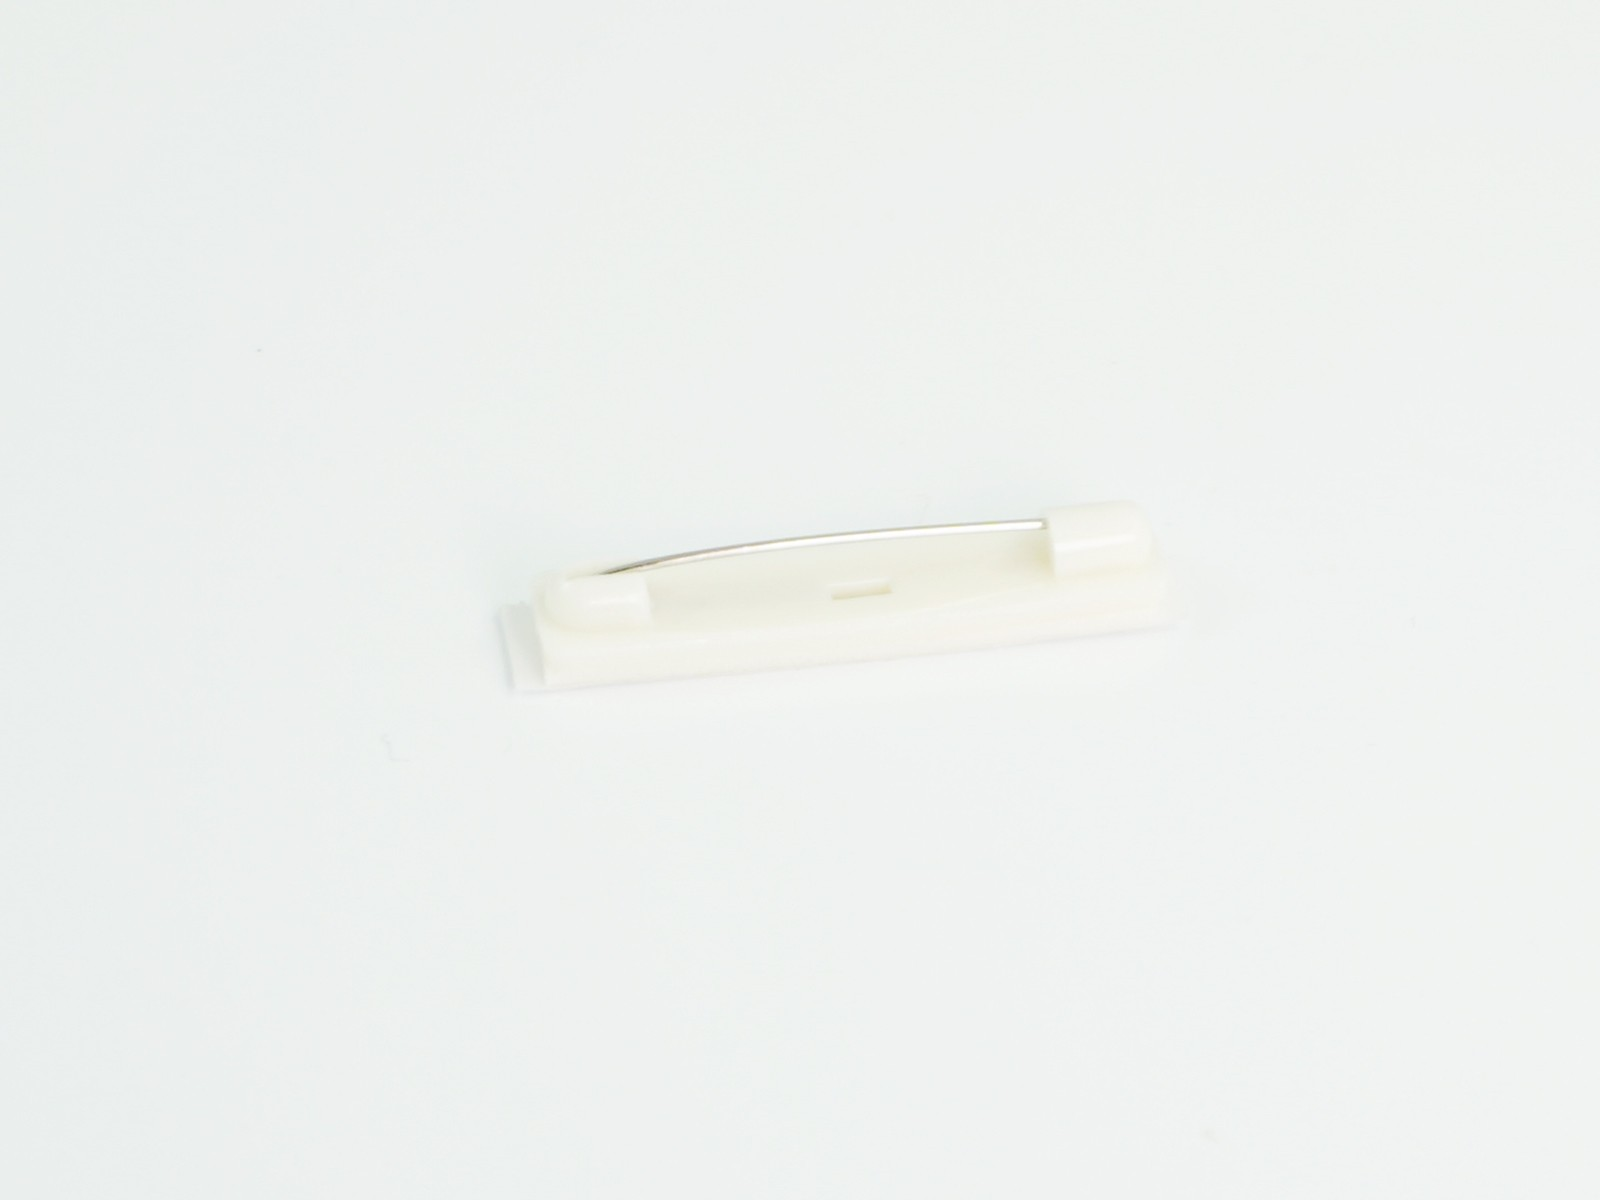 "1 1/2"" Long White Bar Pin, Plastic with Adhesive, 100 pcs/bag"